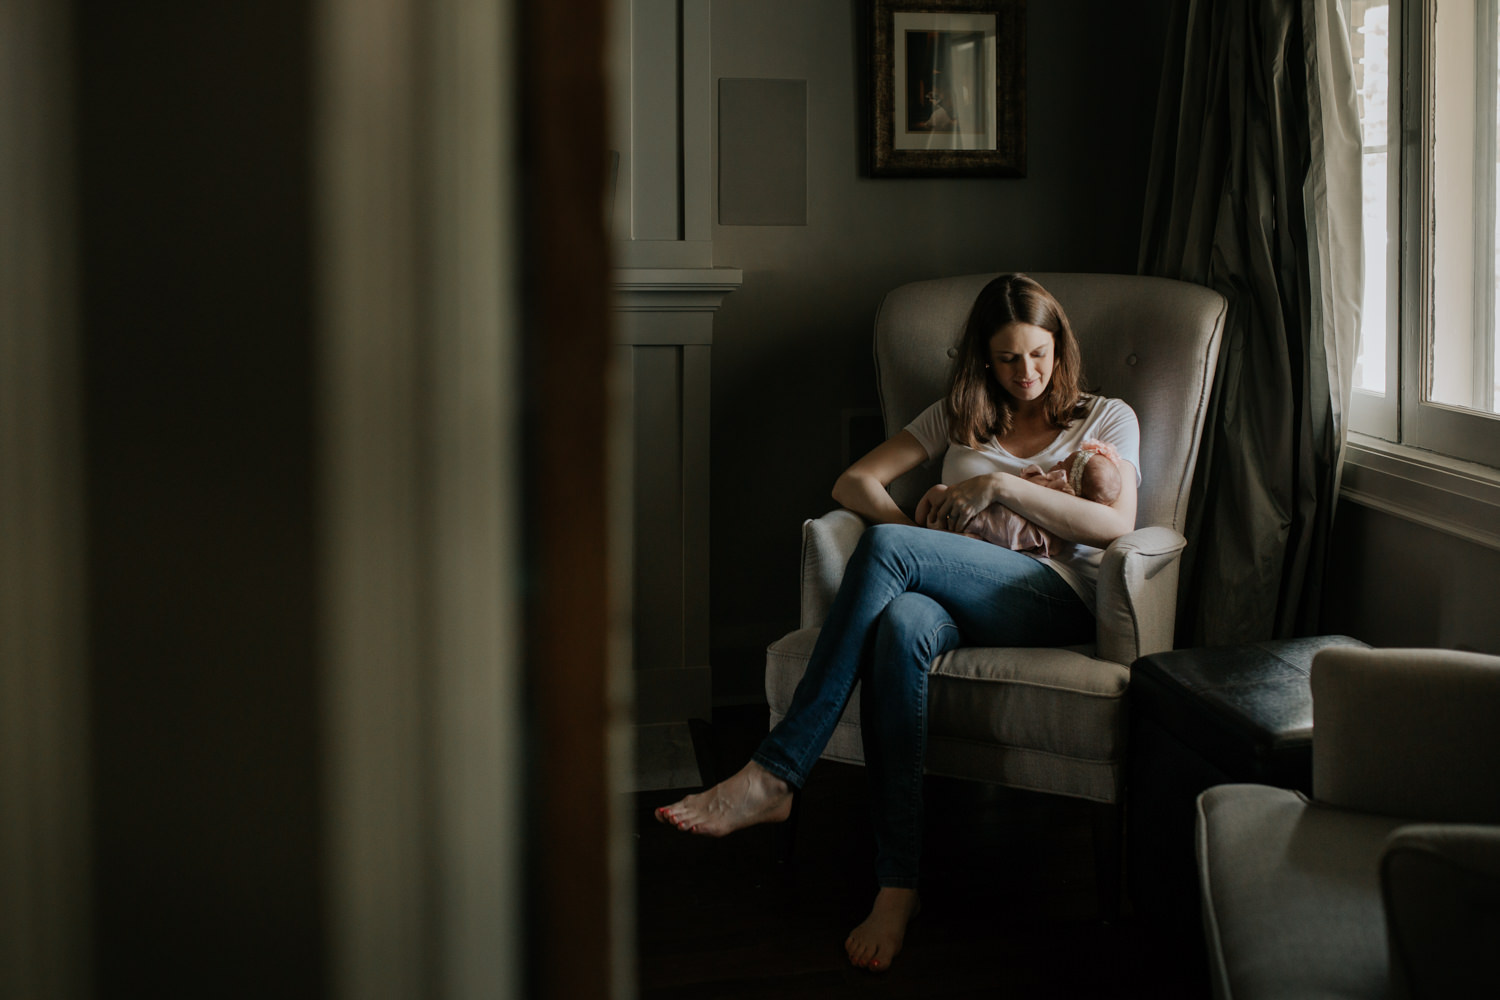 new mother wearing white t-shirt and jeans sitting on chair in living room, holding and looking at 2 week old baby girl in her arms - Barrie Lifestyle Photos